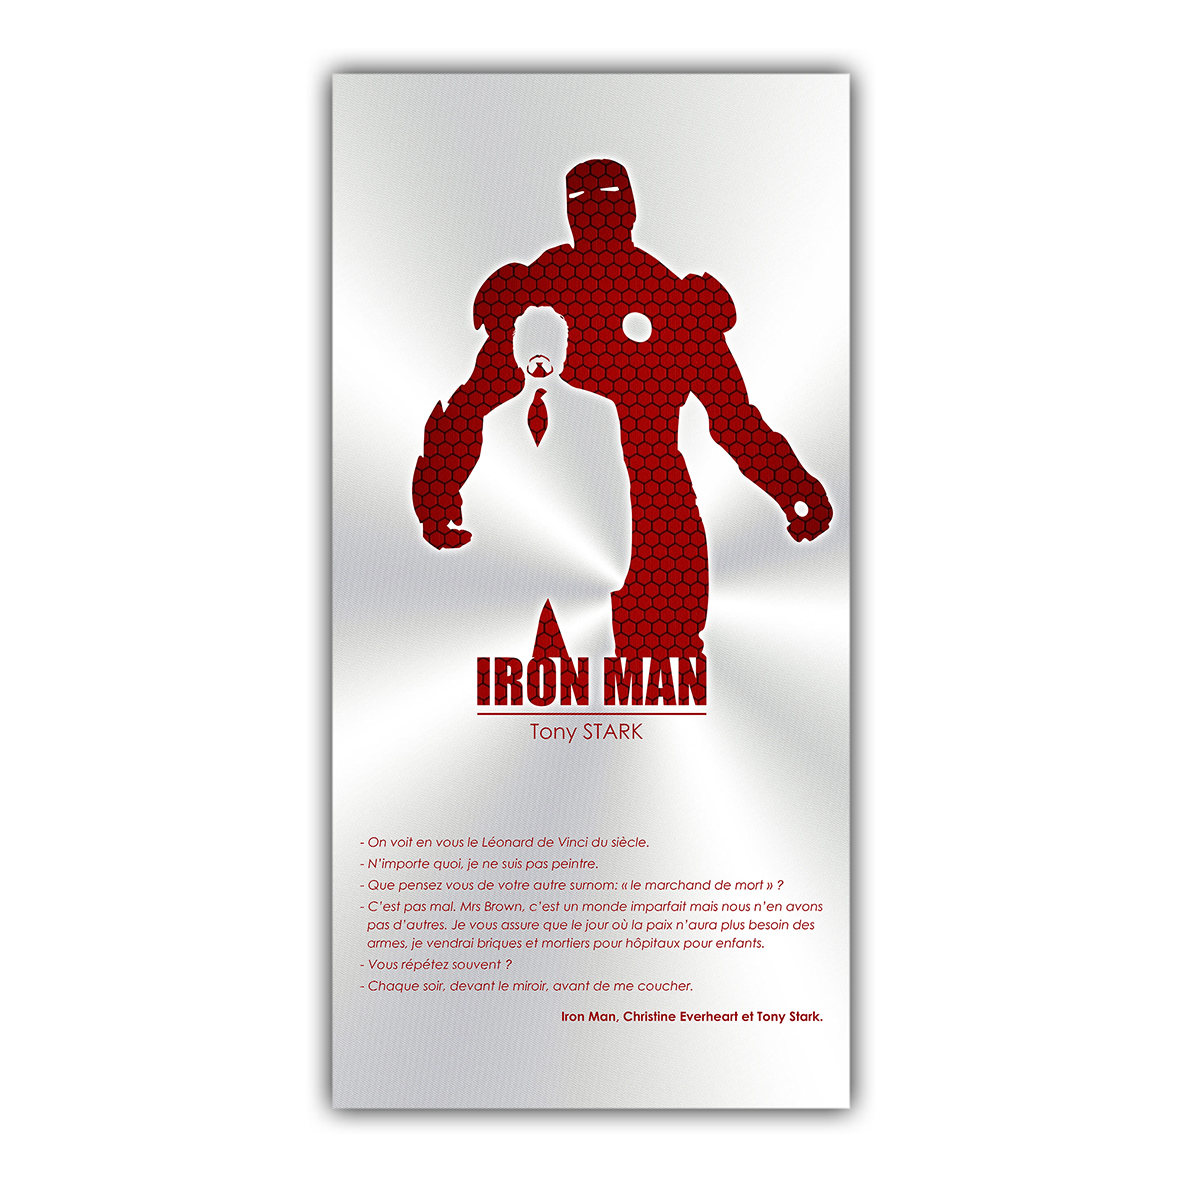 IRON MAN Tony Stark Marvel Comics